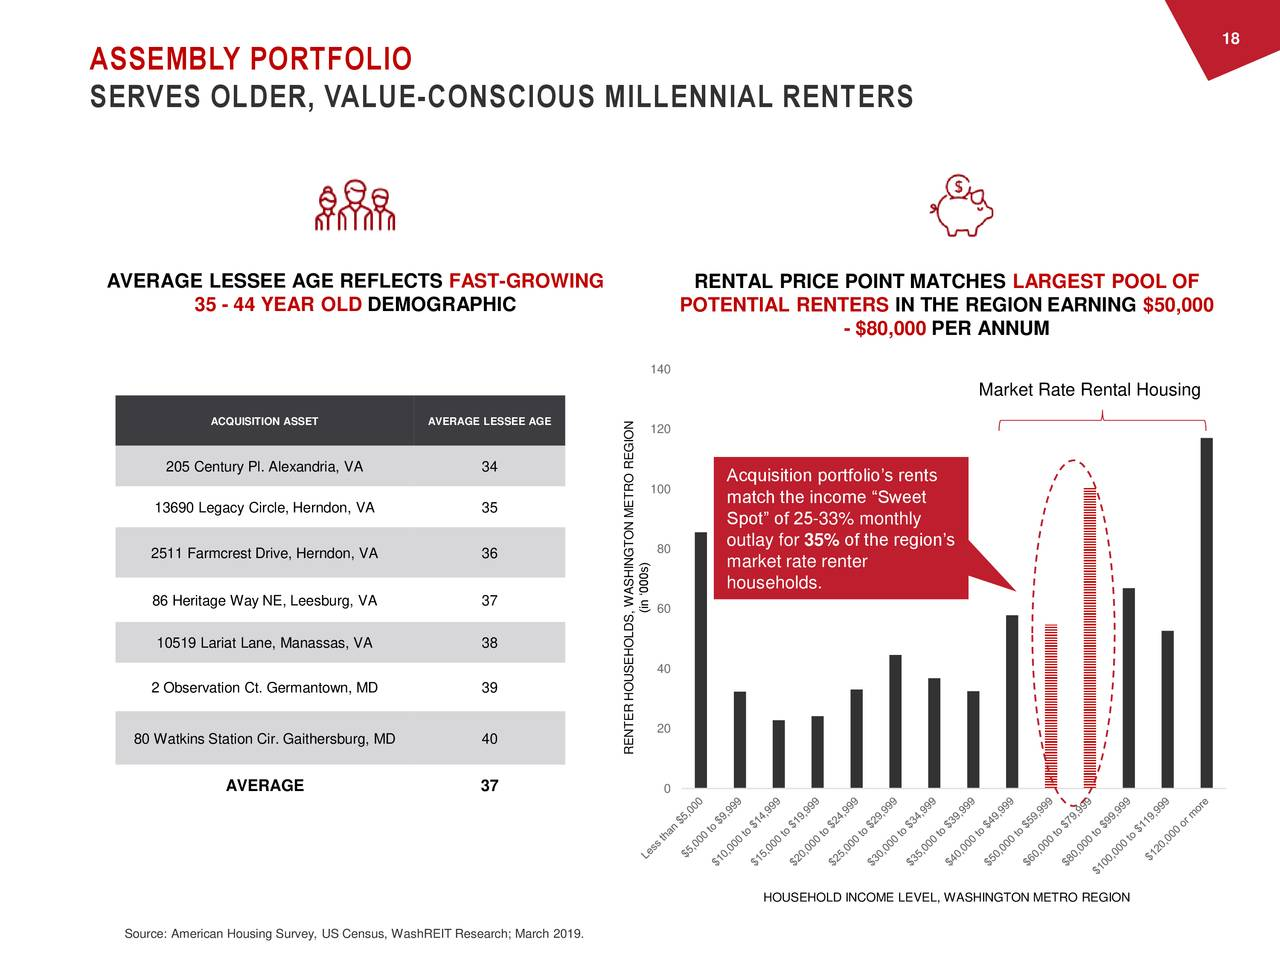 "ASSEMBLY PORTFOLIO SERVES OLDER, VALUE-CONSCIOUS MILLENNIAL RENTERS AVERAGE LESSEE AGE REFLECTS FAST-GROWING RENTAL PRICE POINT MATCHES LARGEST POOL OF 35 - 44 YEAR OLD DEMOGRAPHIC POTENTIAL RENTERS IN THE REGION EARNING $50,000 - $80,000 PER ANNUM 140 Market Rate Rental Housing ACQUISITION ASSET AVERAGE LESSEE AGE 120 205 Century Pl. Alexandria, VA 34 Acquisition portfolio's rents 100 13690 Legacy Circle, Herndon, VA 35 match the income ""Sweet Spot"" of 25-33% monthly outlay for 35% of the region's 2511 Farmcrest Drive, Herndon, VA 36 80 market rate renter households. 86 Heritage Way NE, Leesburg, VA 37 (in '000s) 10519 Lariat Lane, Manassas, VA 38 40 2 Observation Ct. Germantown, MD 39 20 80 Watkins Station Cir. Gaithersburg, MD 40 RENTER HOUSEHOLDS, WASHINGTON METRO REGION AVERAGE 37 0 HOUSEHOLD INCOME LEVEL, WASHINGTON METRO REGION Source: American Housing Survey, US Census, WashREIT Research; March 2019."